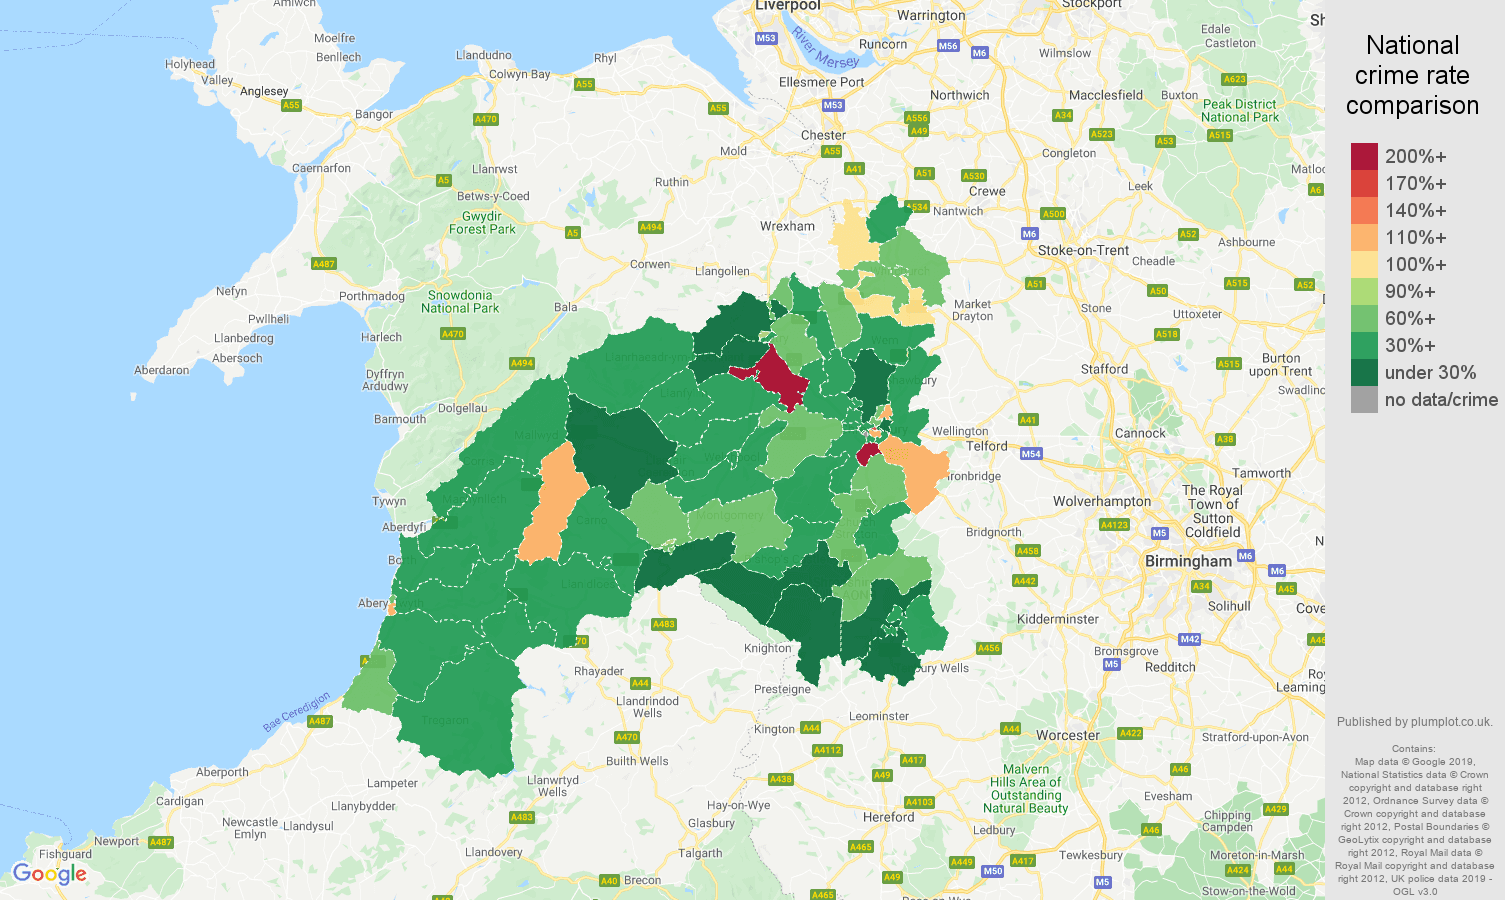 Shrewsbury other theft crime rate comparison map